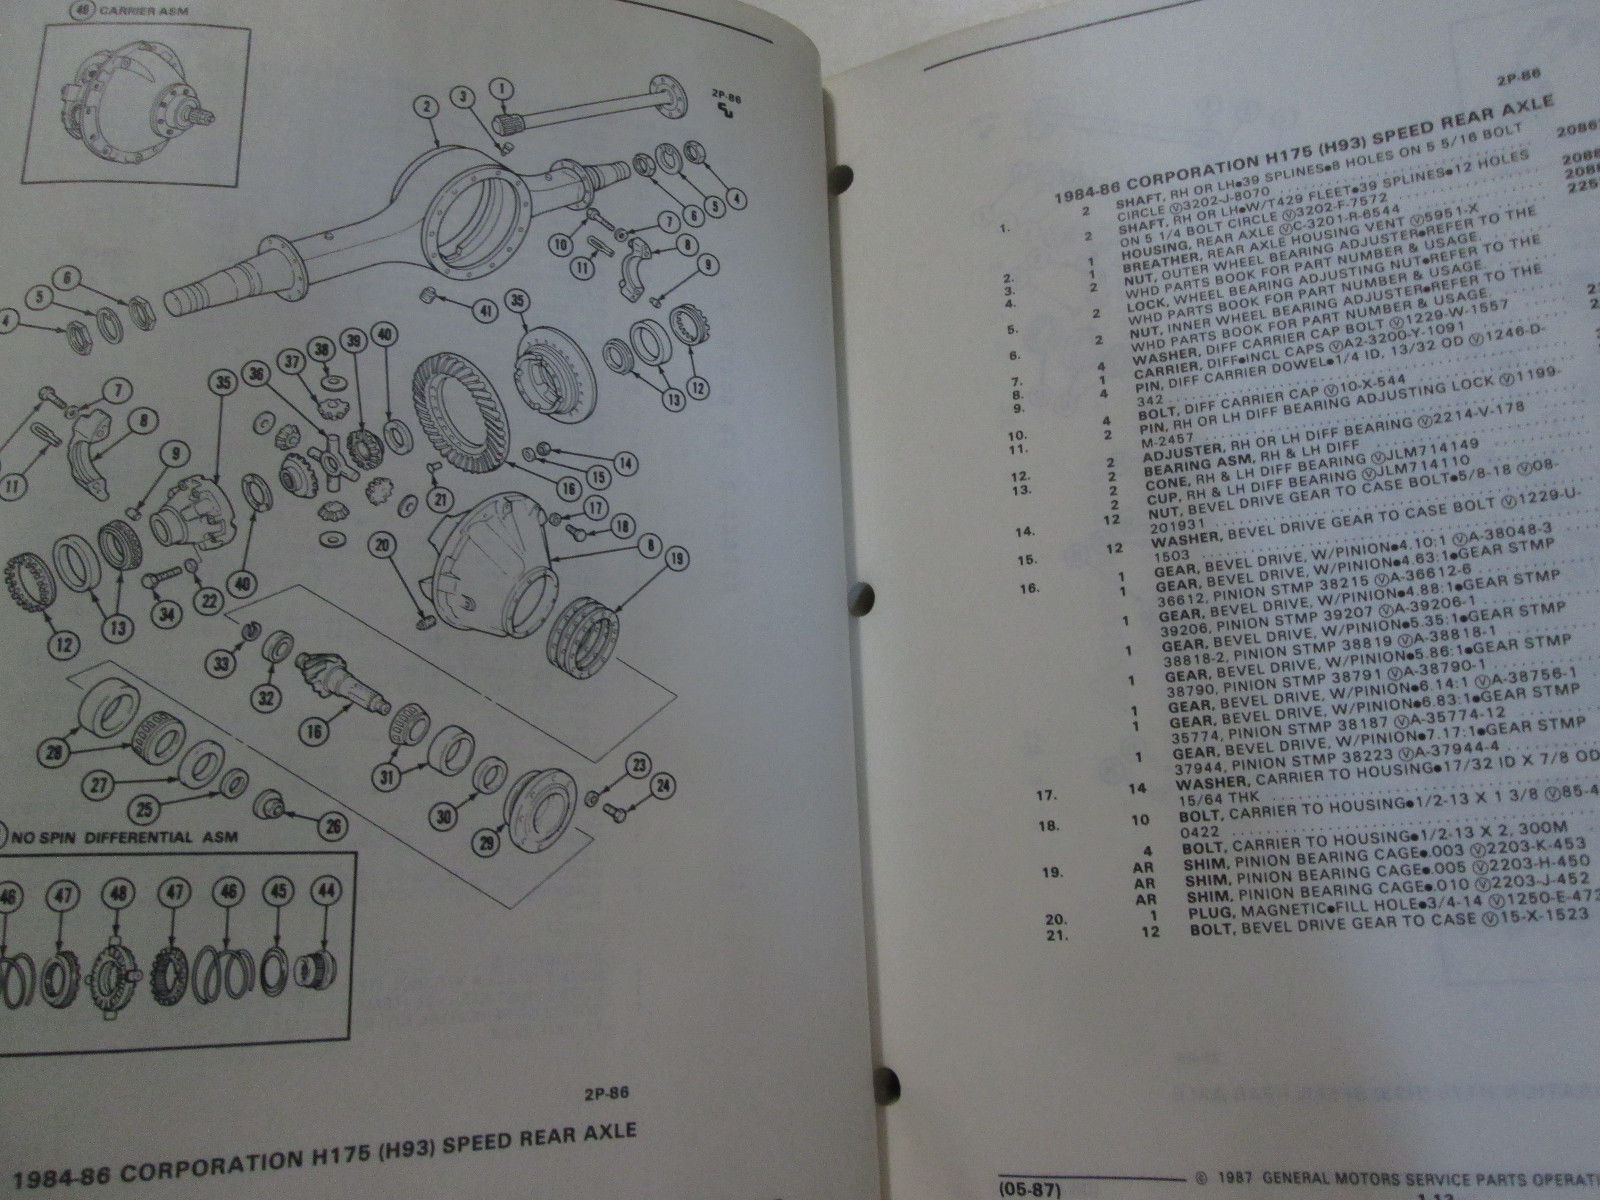 1984 1985 1986 1987 GM TRUCK MEDIUM DUTY REAR AXLE PARTS Catalog Manual OEM Book image 7